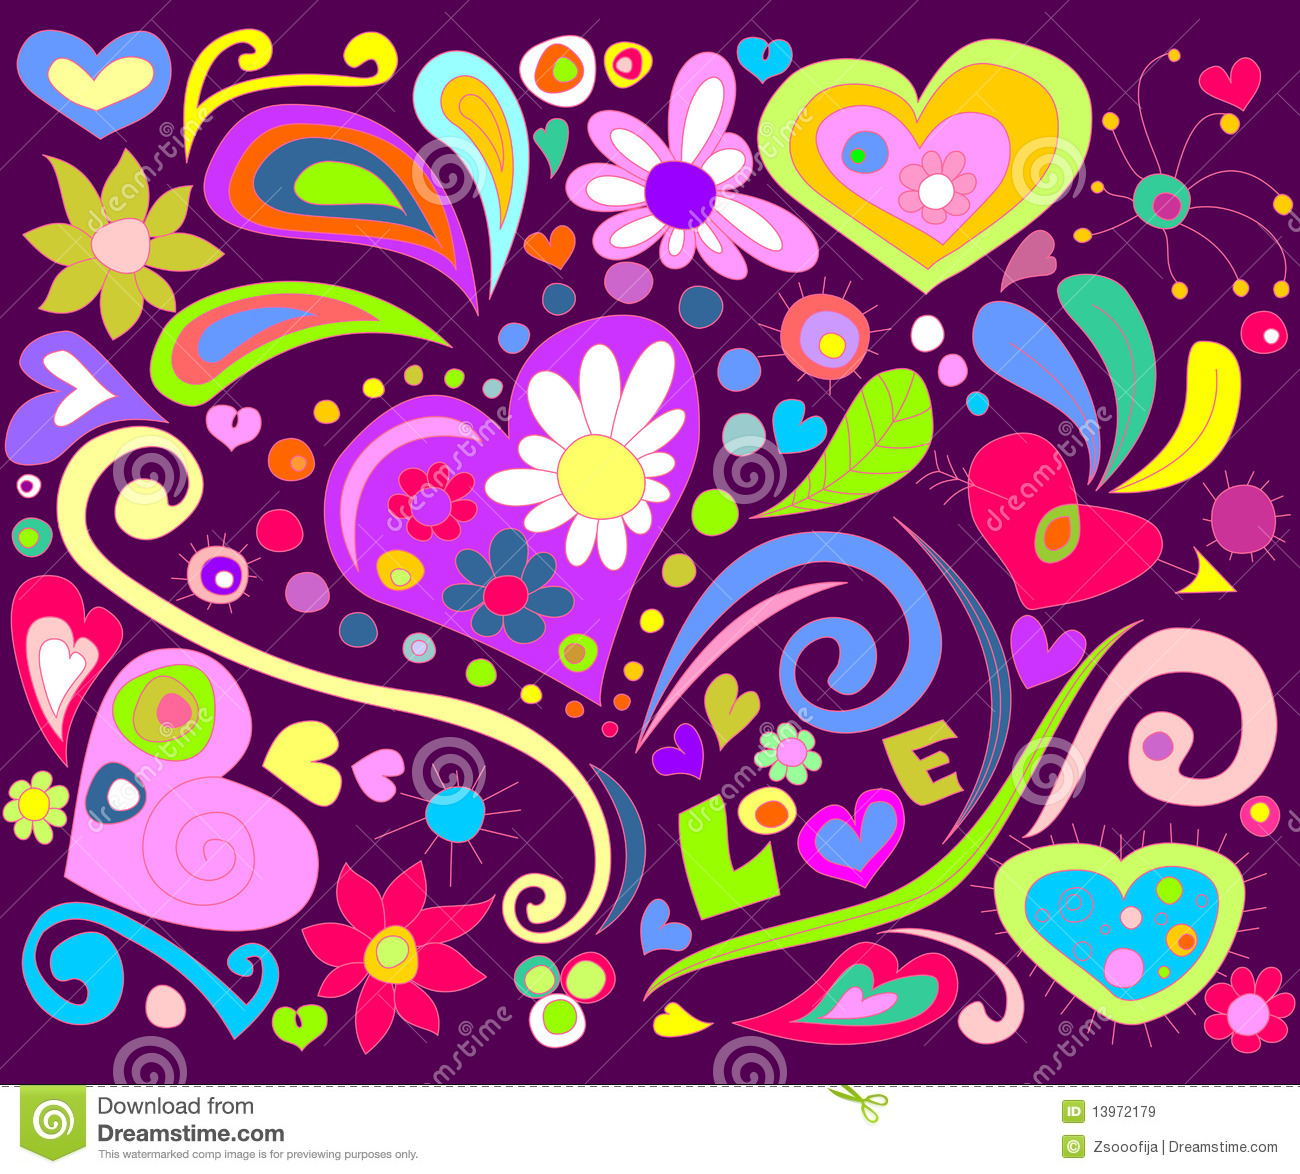 Colorful Love Doodle Royalty Free Stock Images Image 13972179